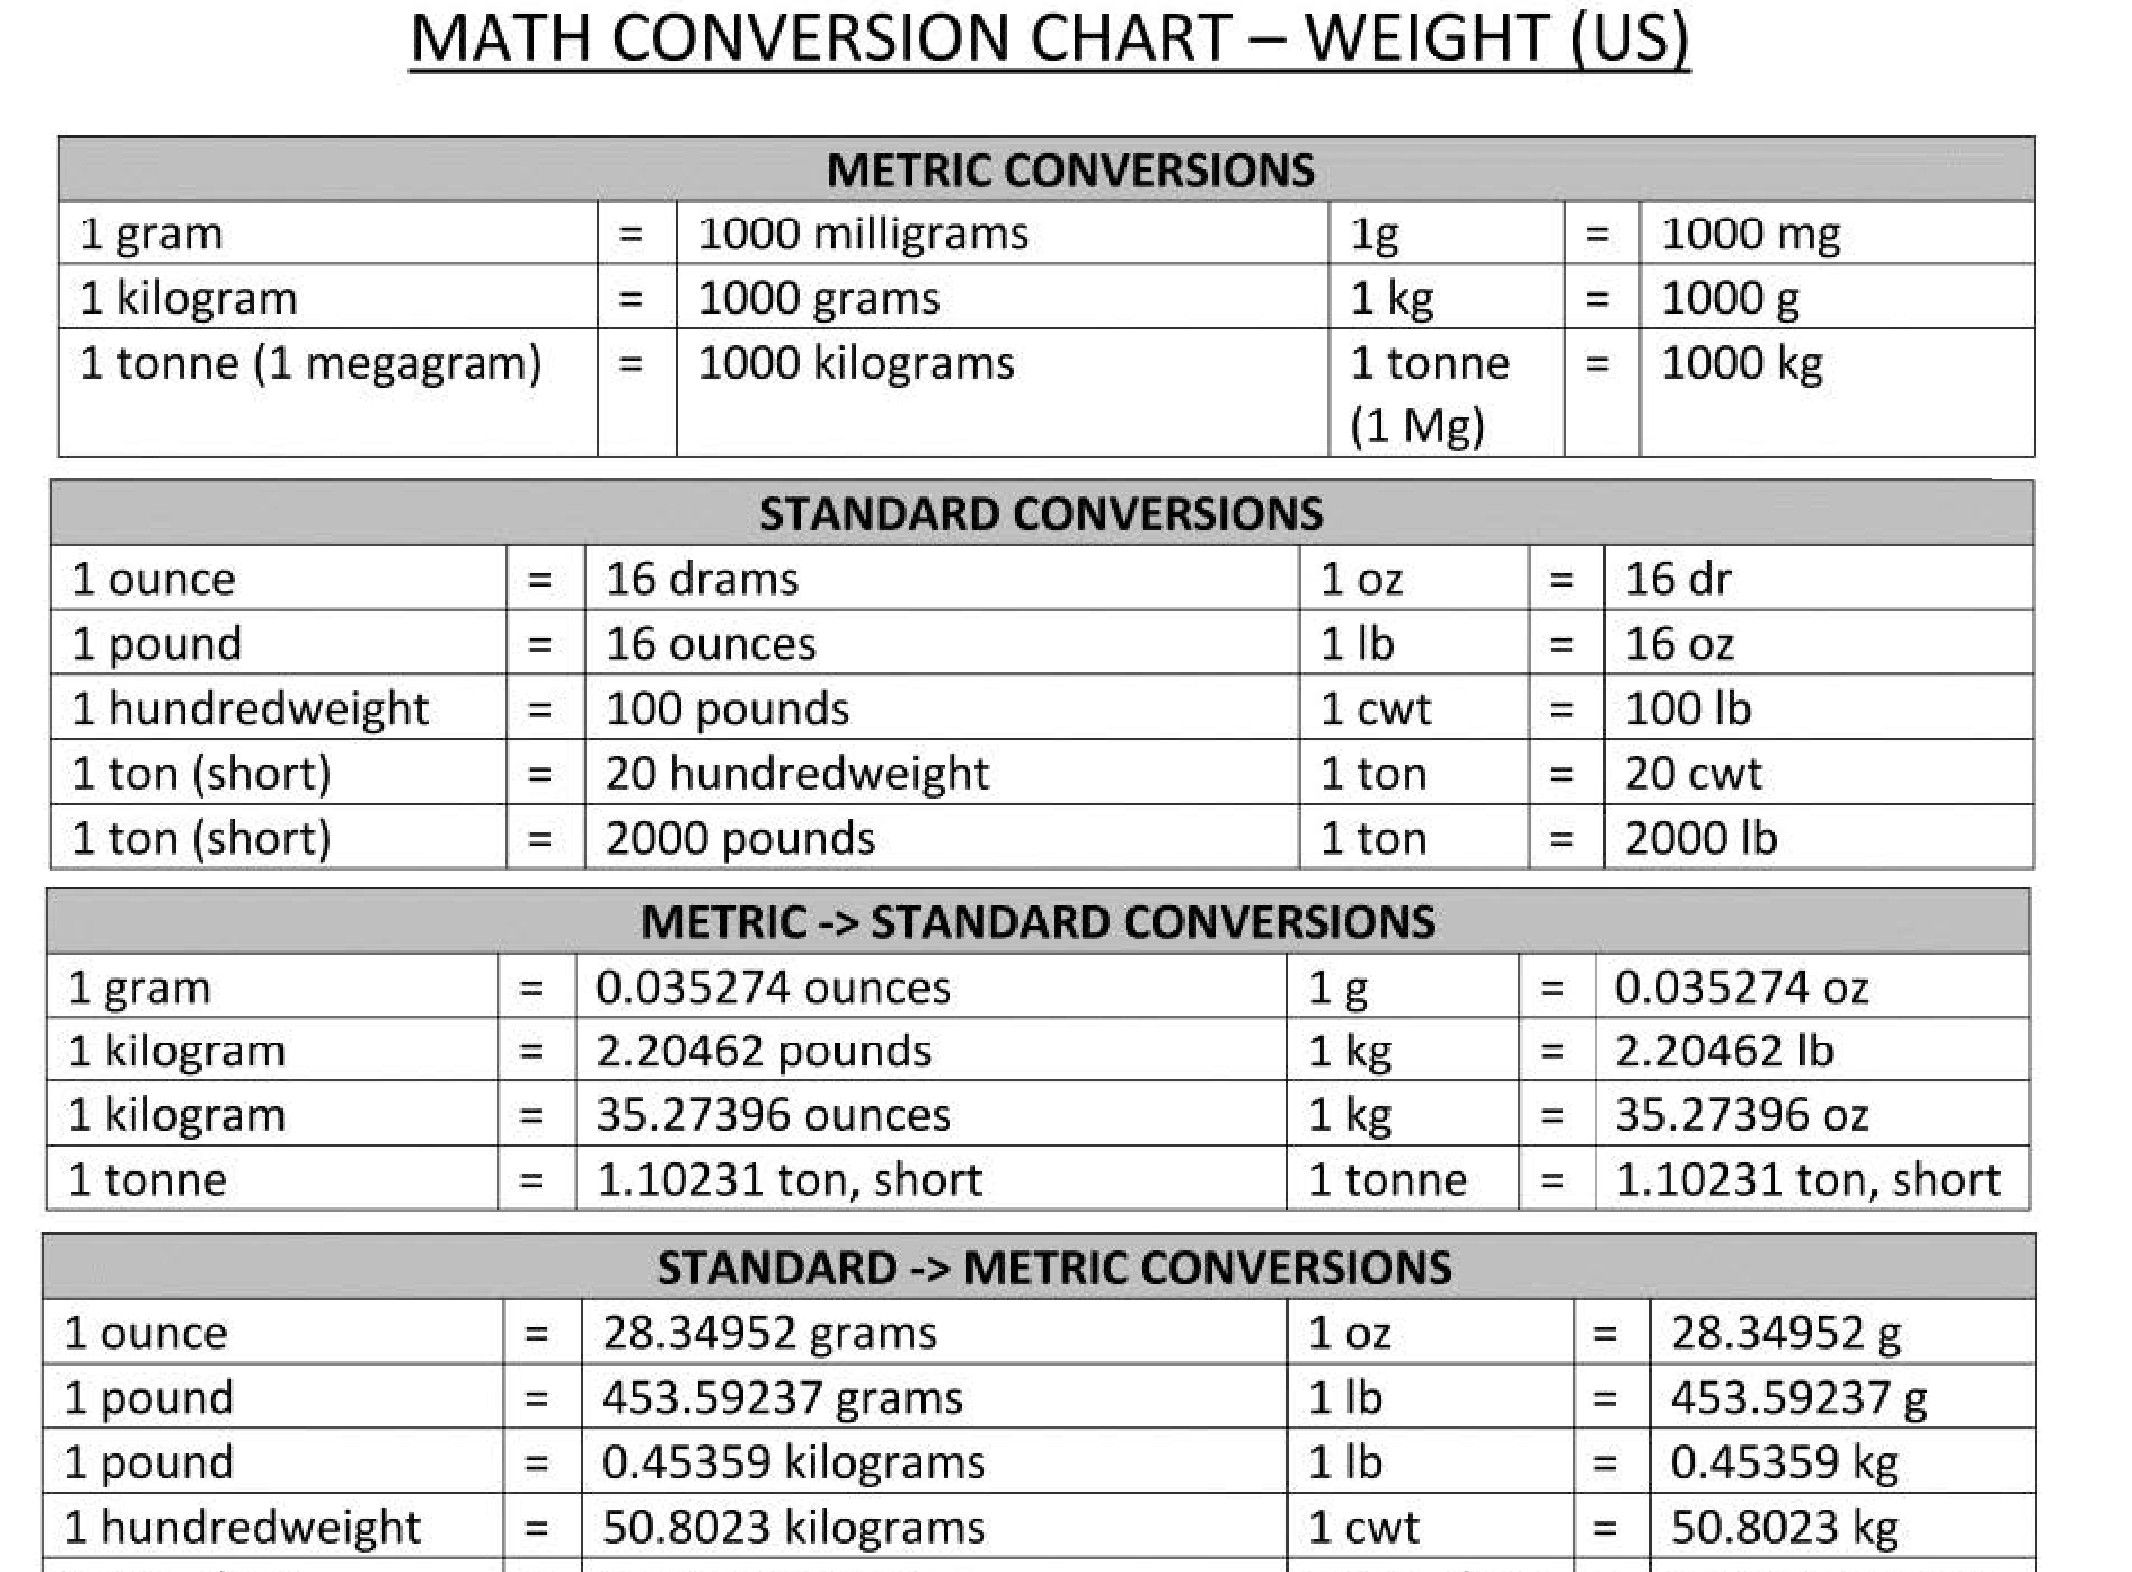 Cogent Weight Converter Kilos To Pounds Chart Kilo To Pounds Conversion Chart Powerlifting Medical Math Char Math Conversions Conversion Chart Math Math Charts